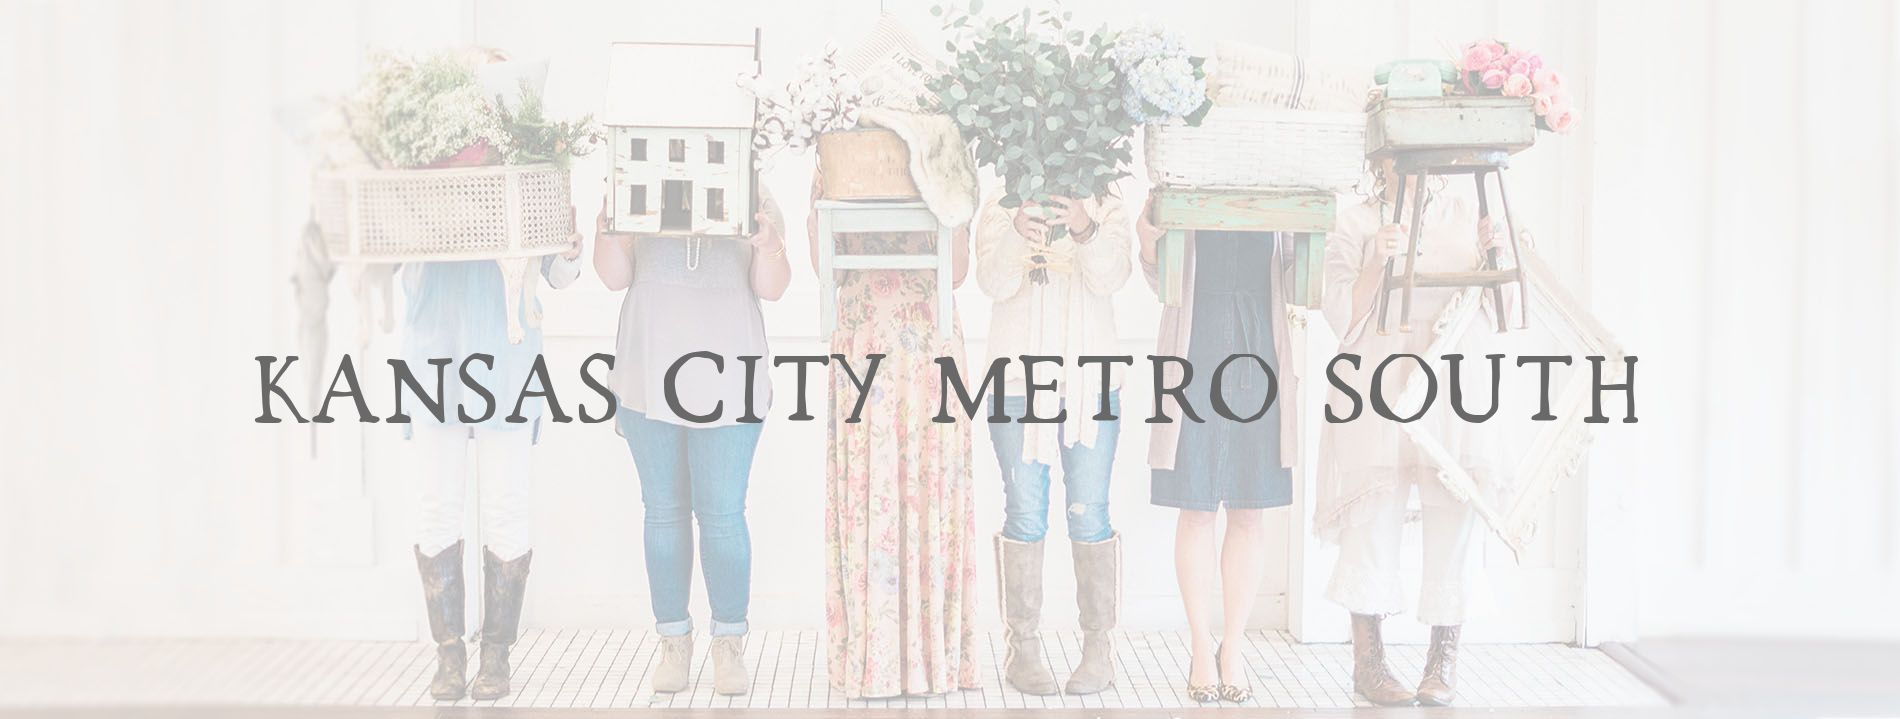 Kansas City Metro South